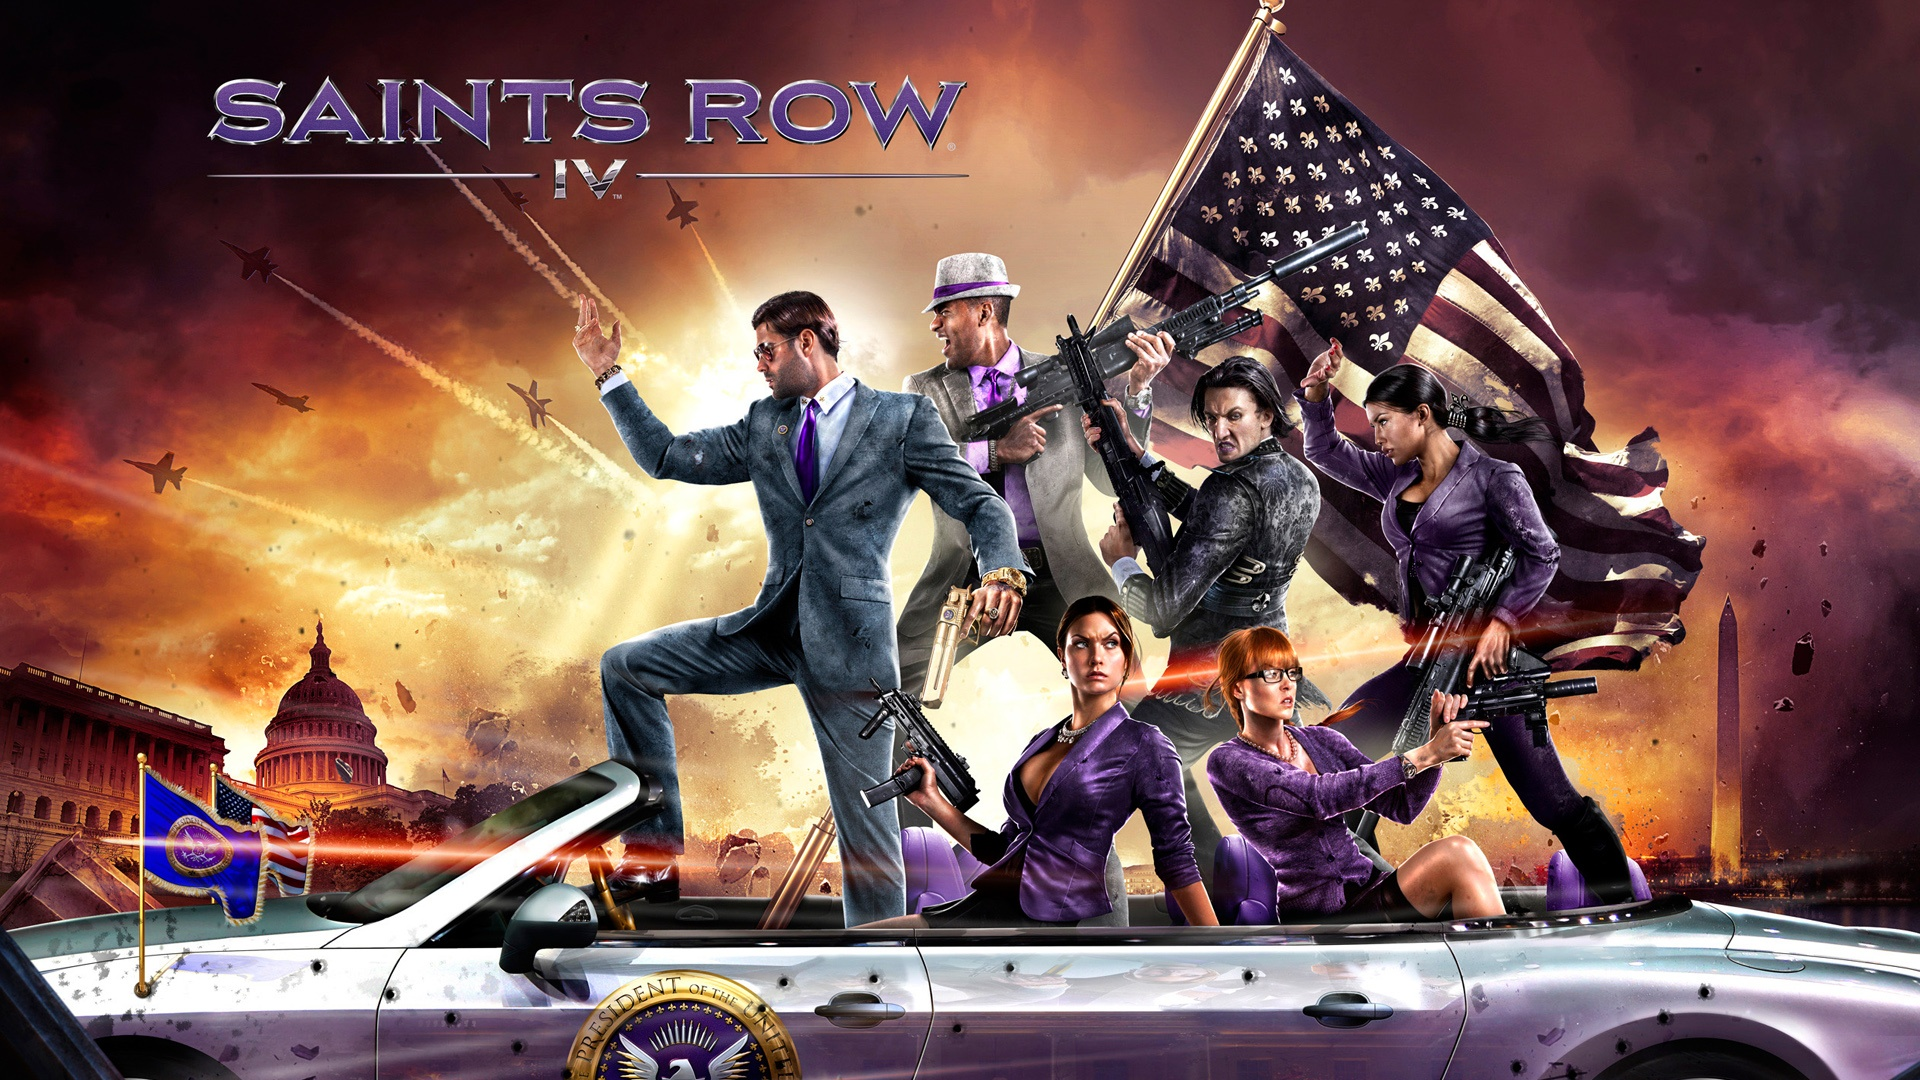 saints_row_4-1920x1080.jpg